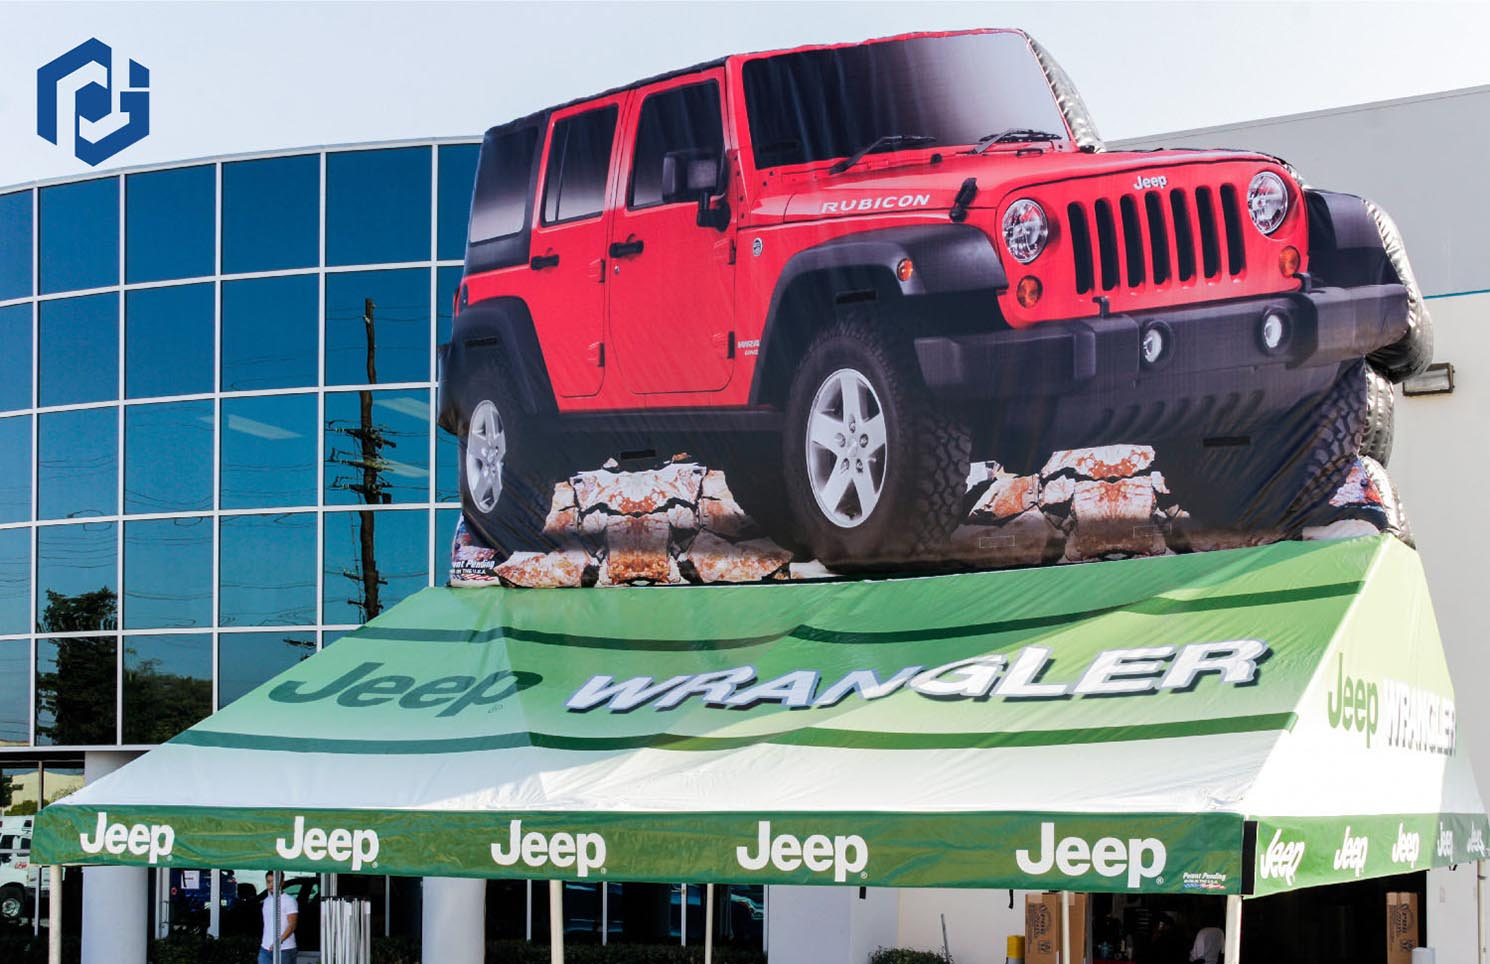 red-jeep-wrangler-tent-with-inflatable-01.jpg